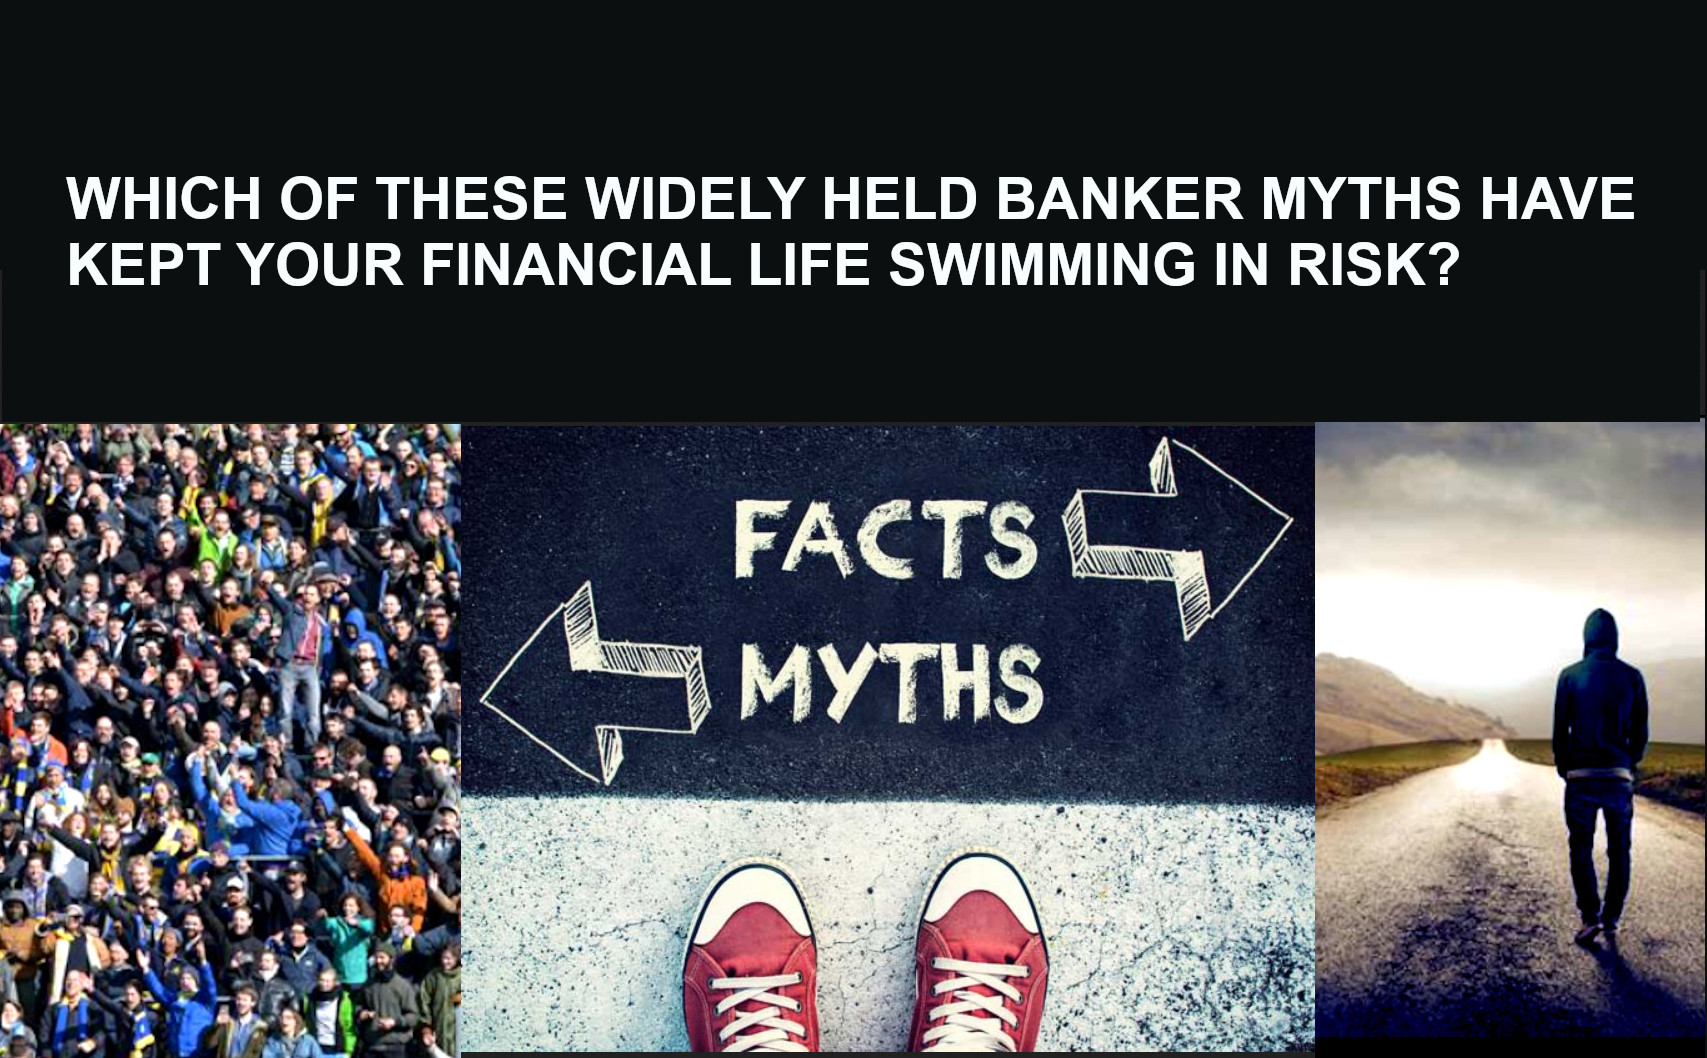 Most widely believed finance and banking myths